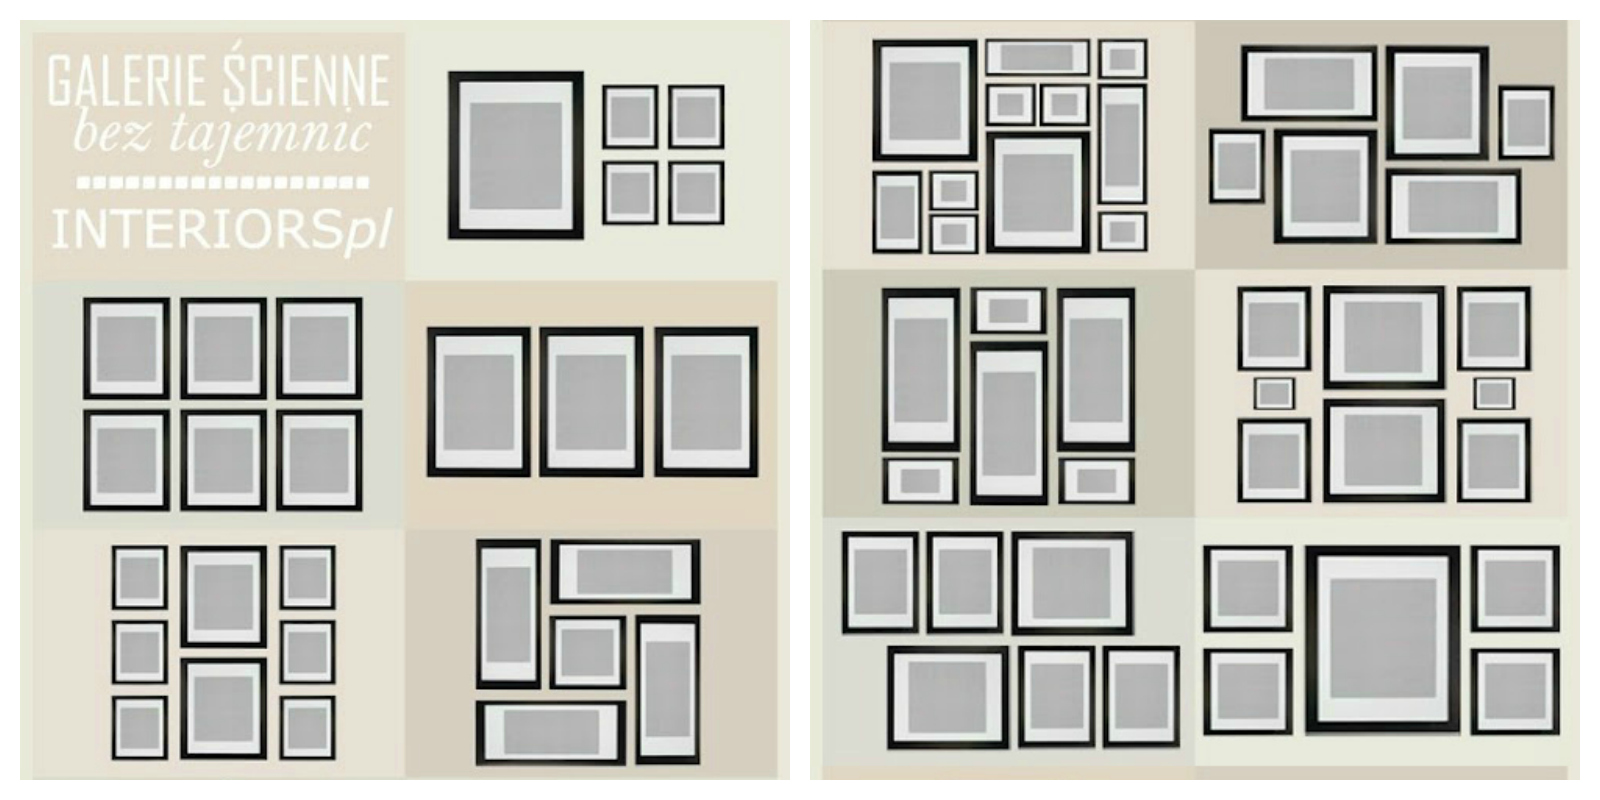 15 icon photo gallery template images free website gallery templates app icon template and. Black Bedroom Furniture Sets. Home Design Ideas